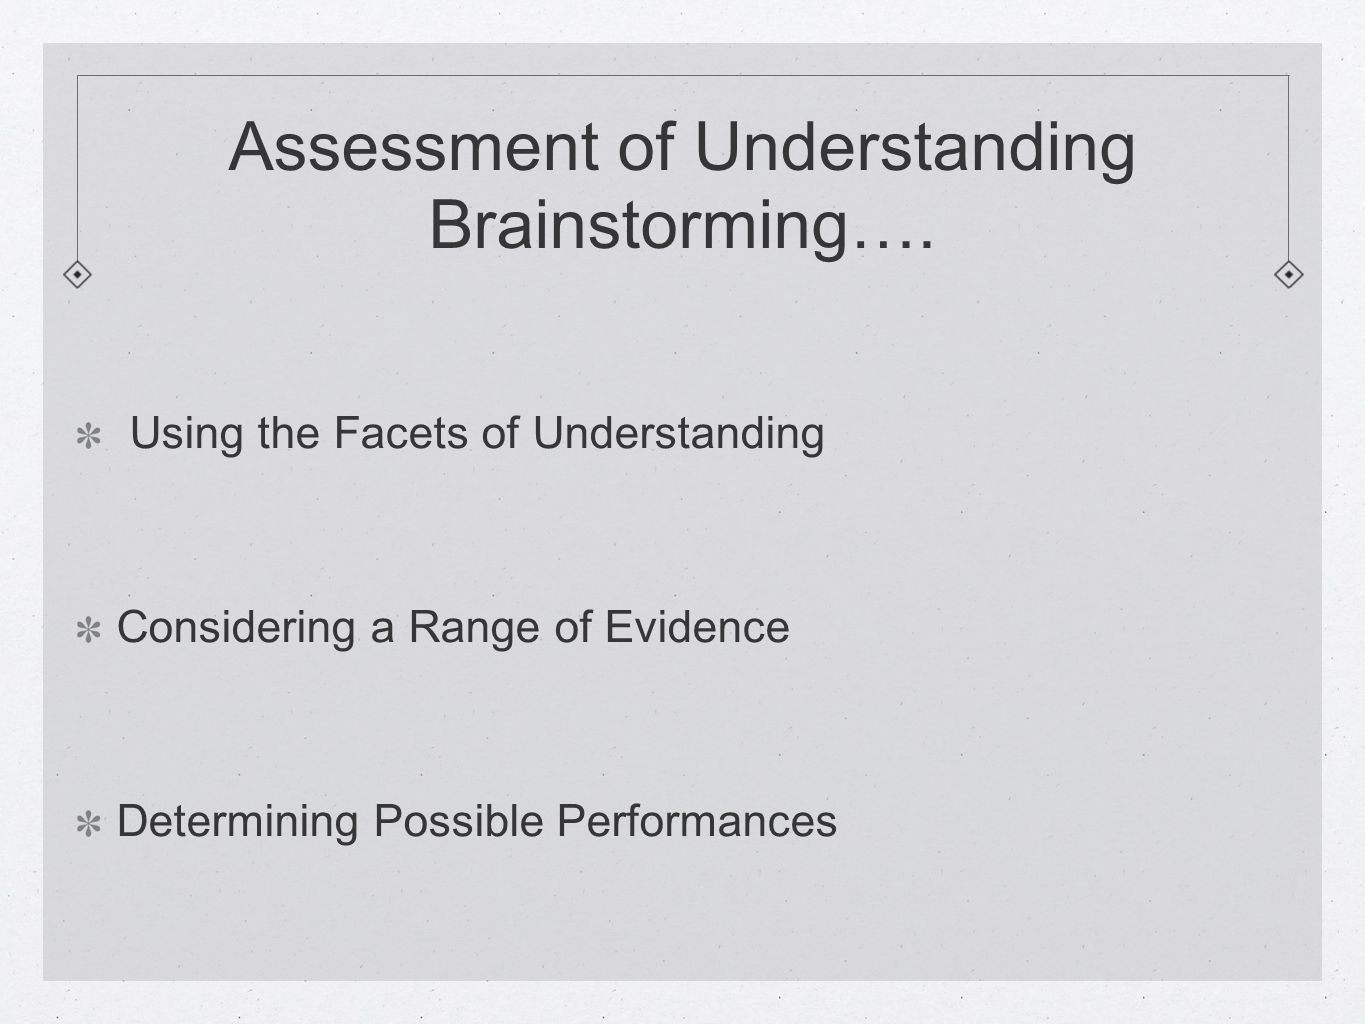 Assessment of Understanding Brainstorming….